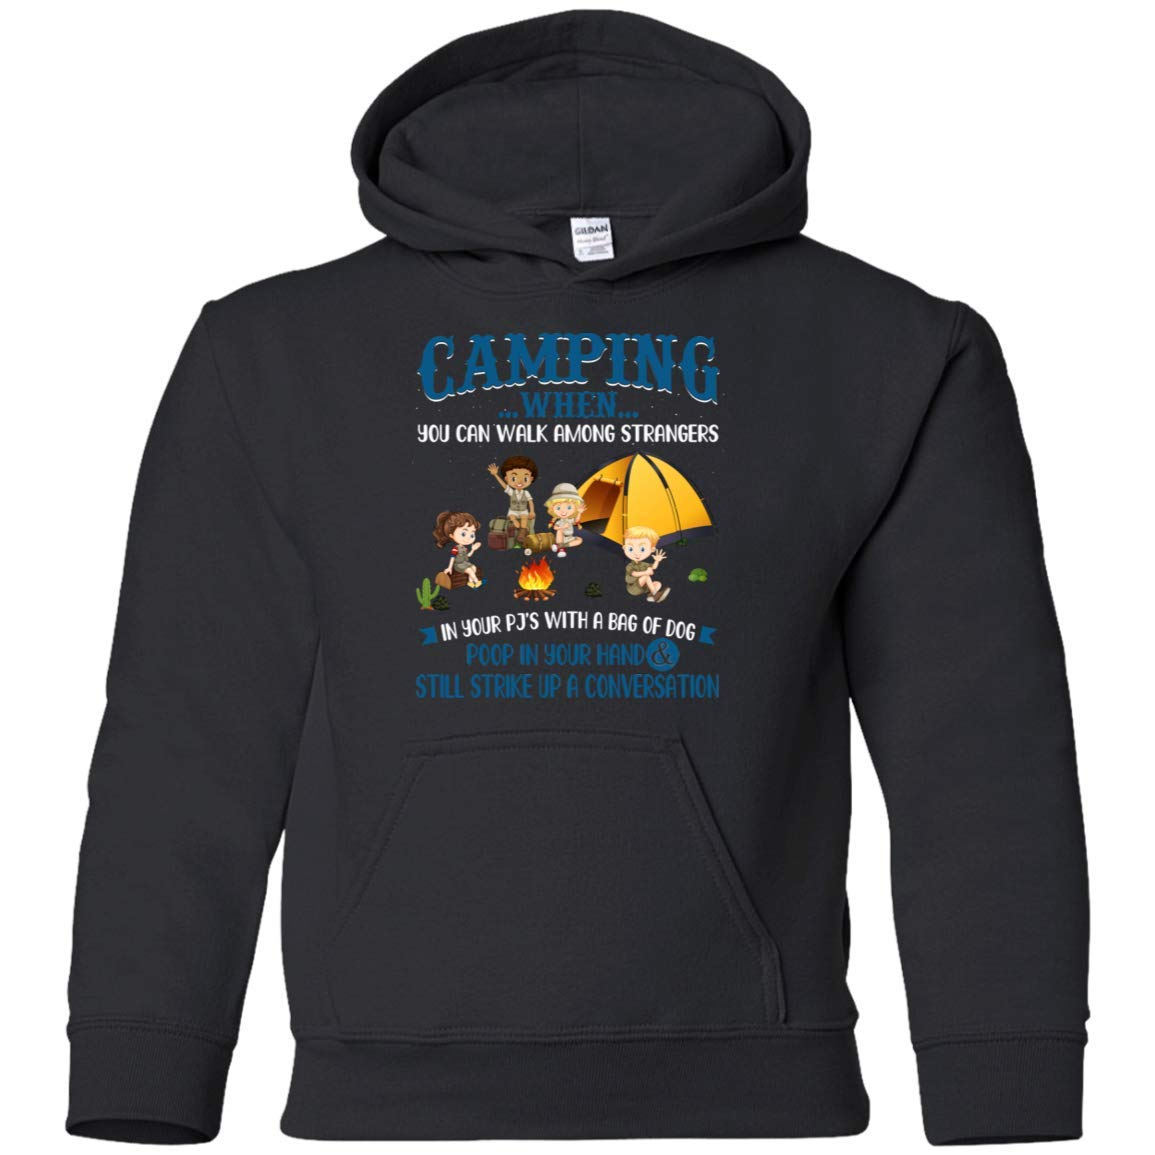 Teely Shop Little Boys Camping When You Can Walk Among Strangers G185B Gildan Youth Pullover Hoodie